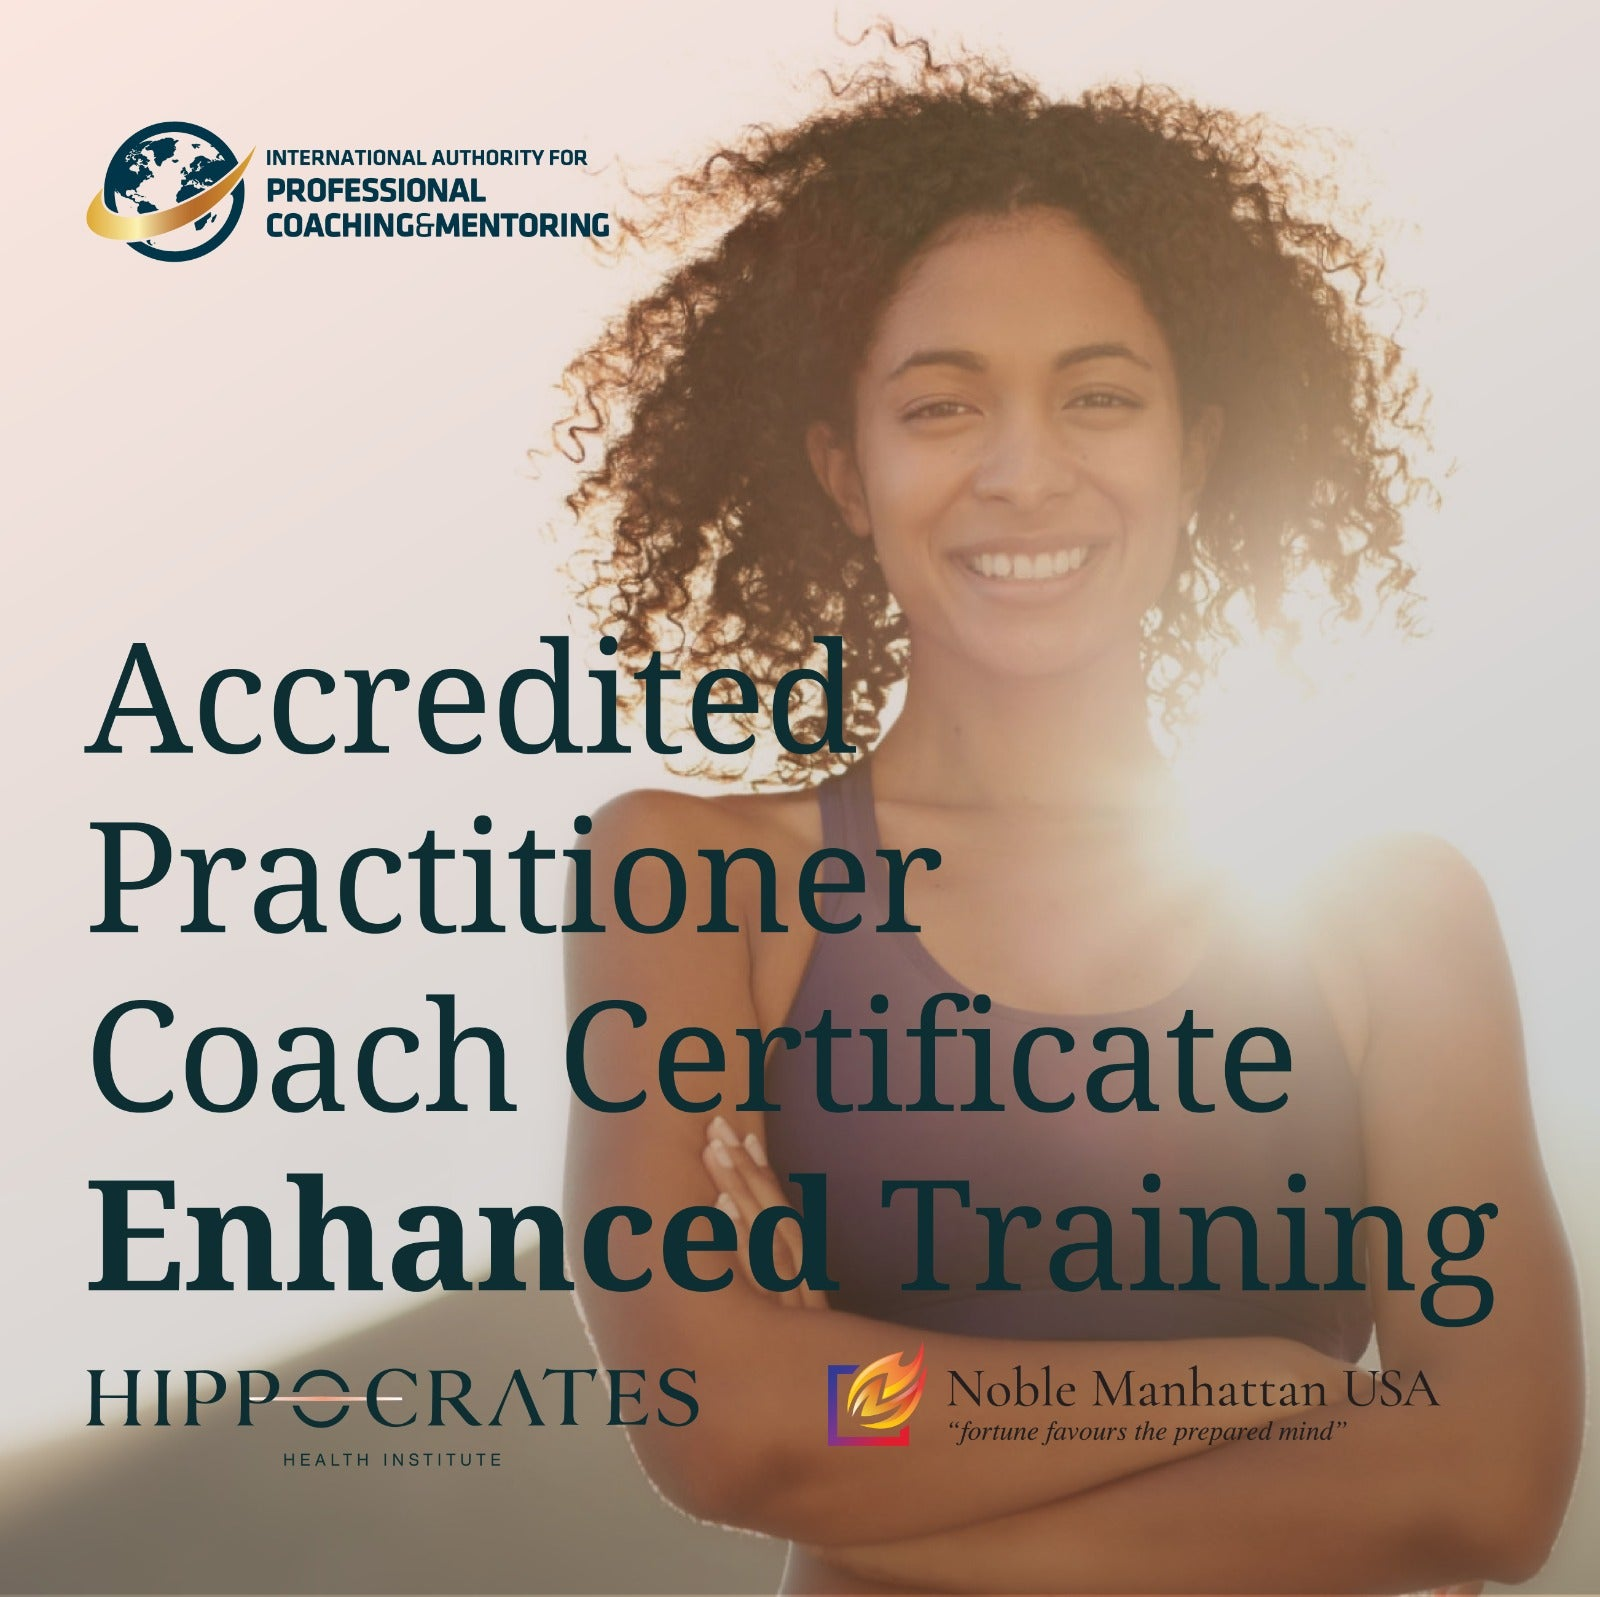 Practitioner Coach Certificate Enhanced Training with 3-Day Residential at Hippocrates